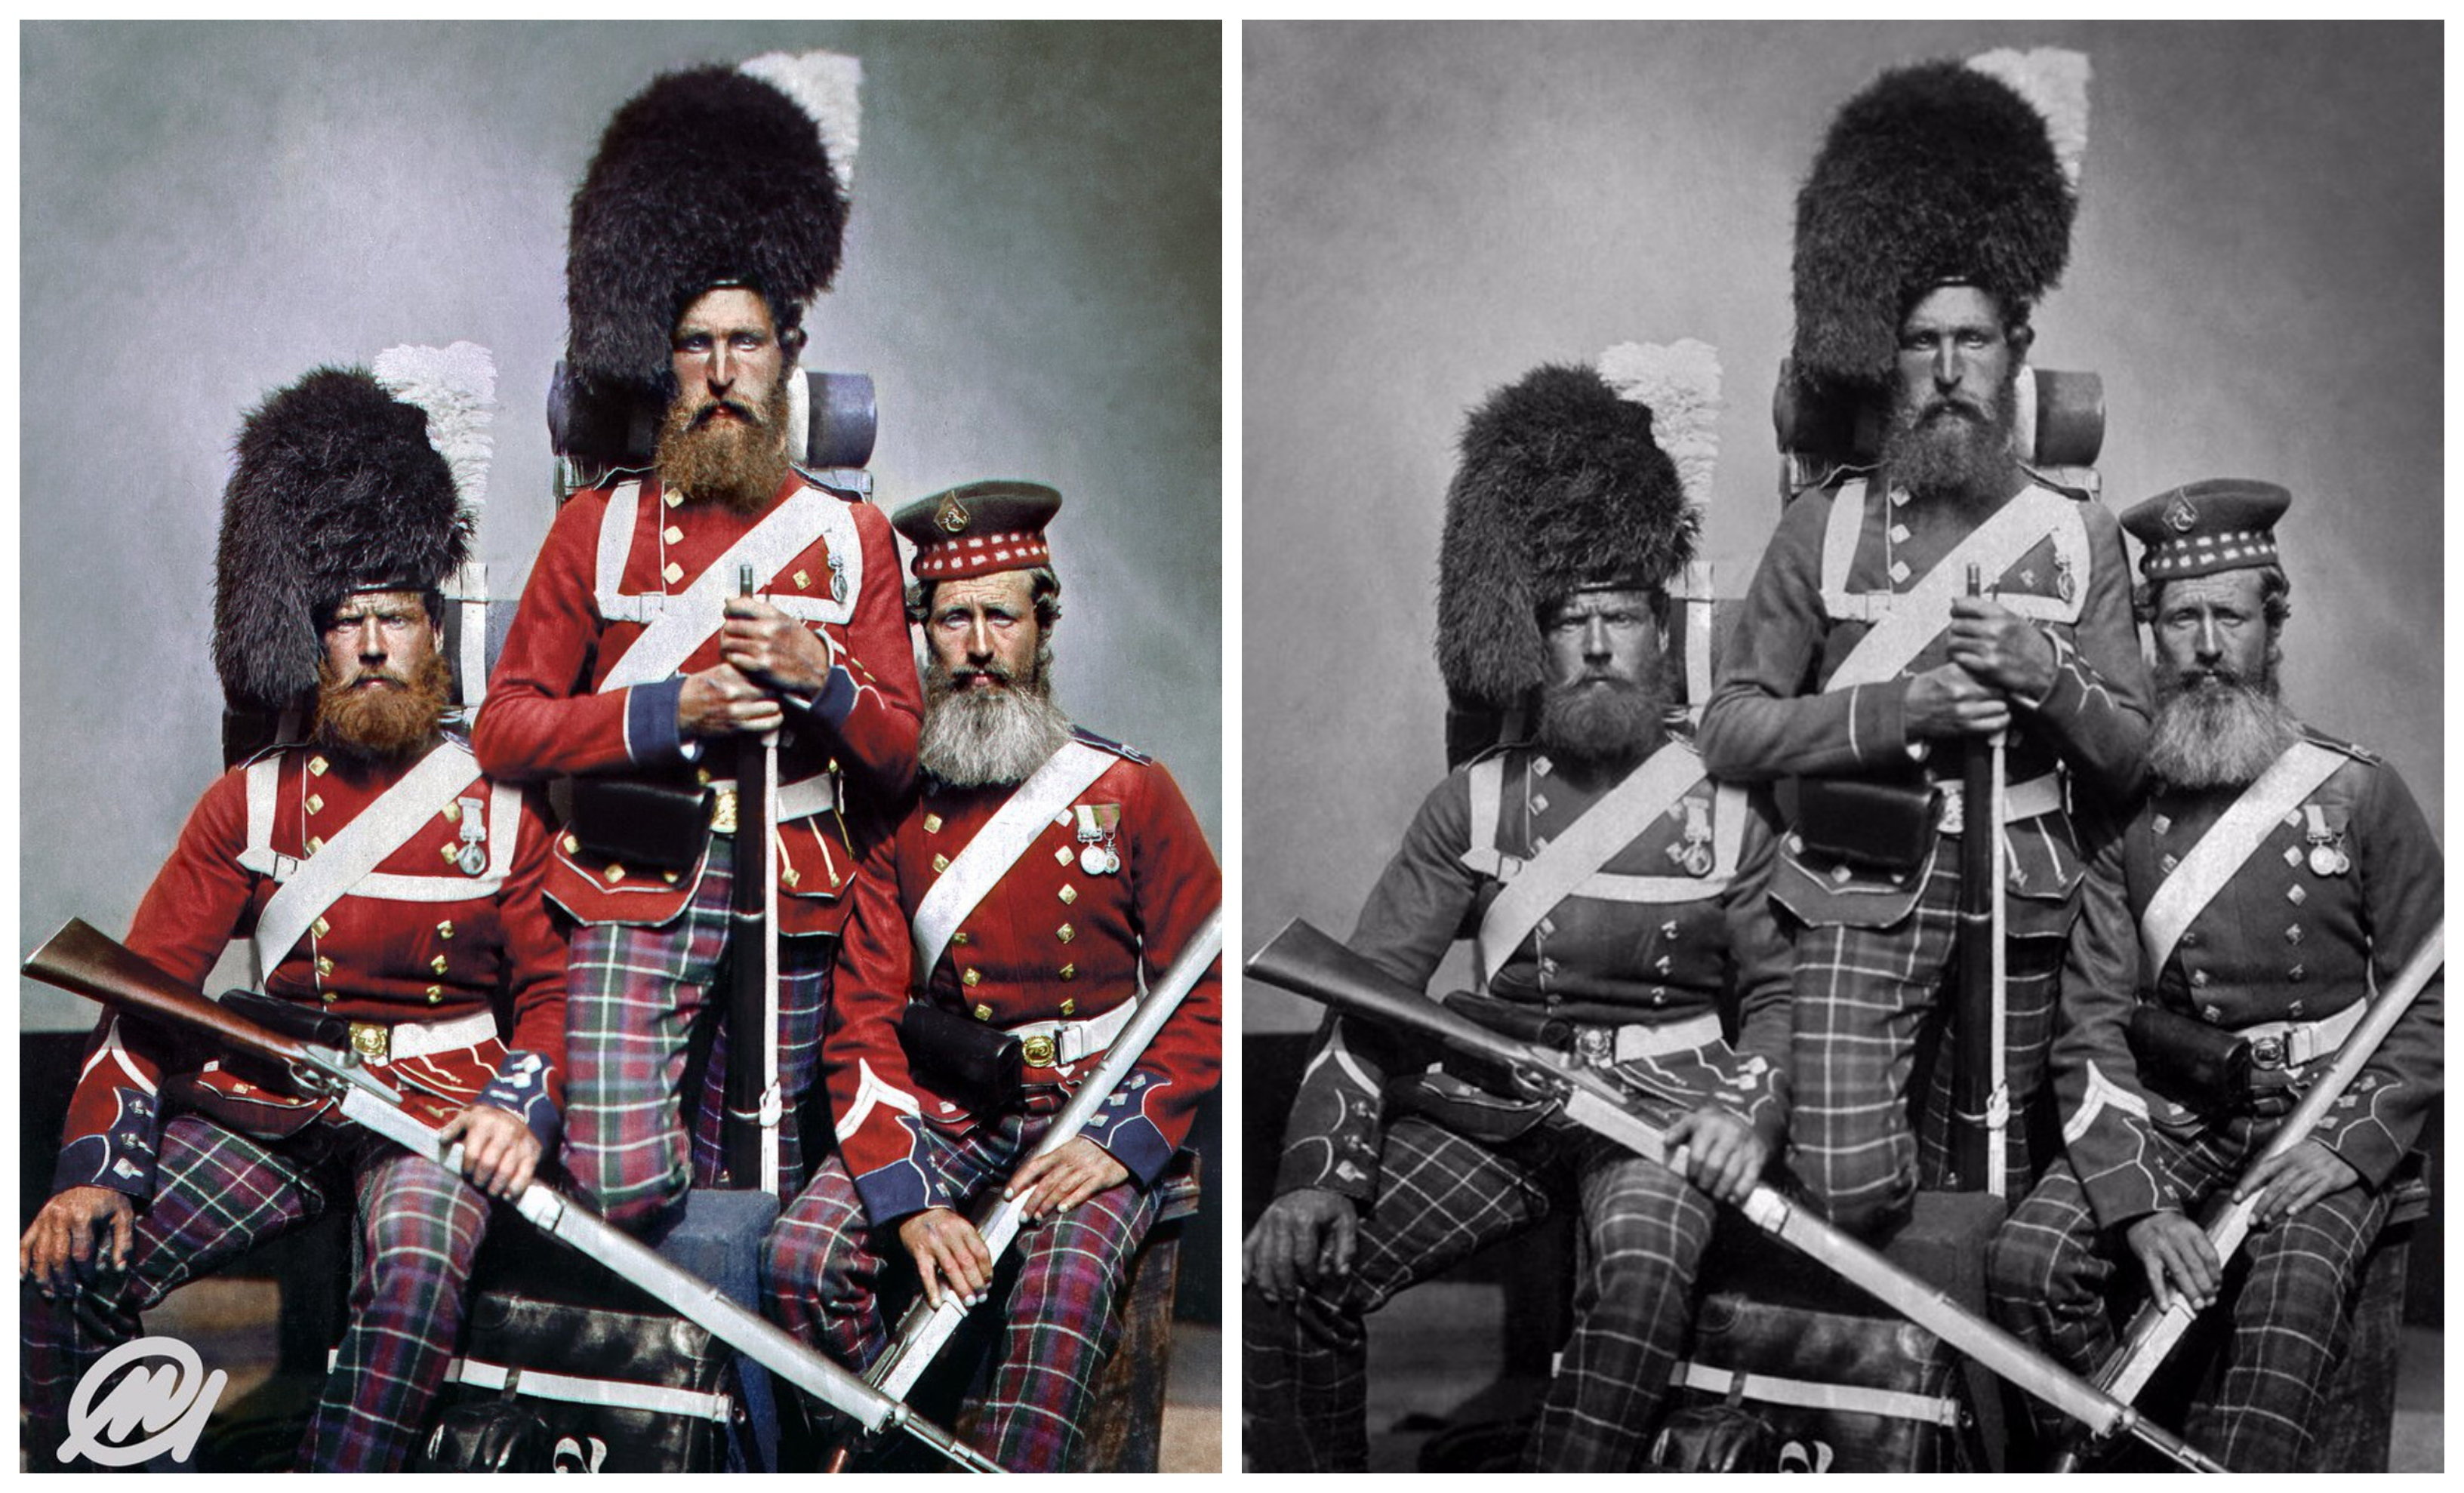 William Noble, Alexander Davison and John Harper of the 72nd Regiment, Duke of Albany's Own Highlanders, who served in the Crimean War between 1853 and 1856, seeing action at the Siege of Sevastopol. The colourised image is held at the Imperial War Museum in London